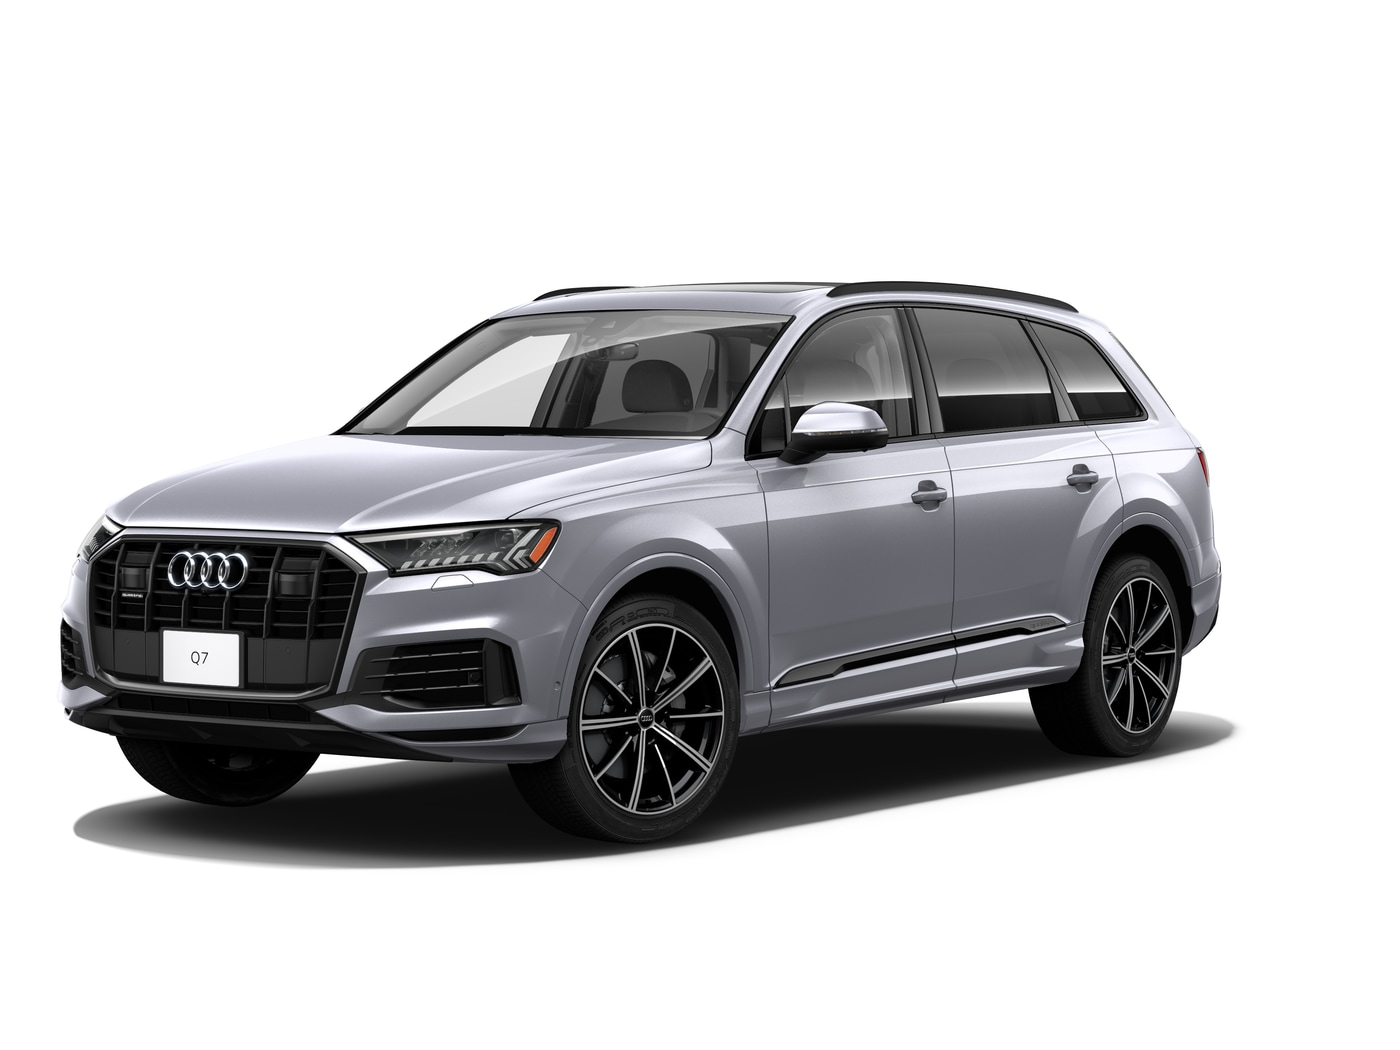 New 2020 Audi Q7 Prestige SUV in New London